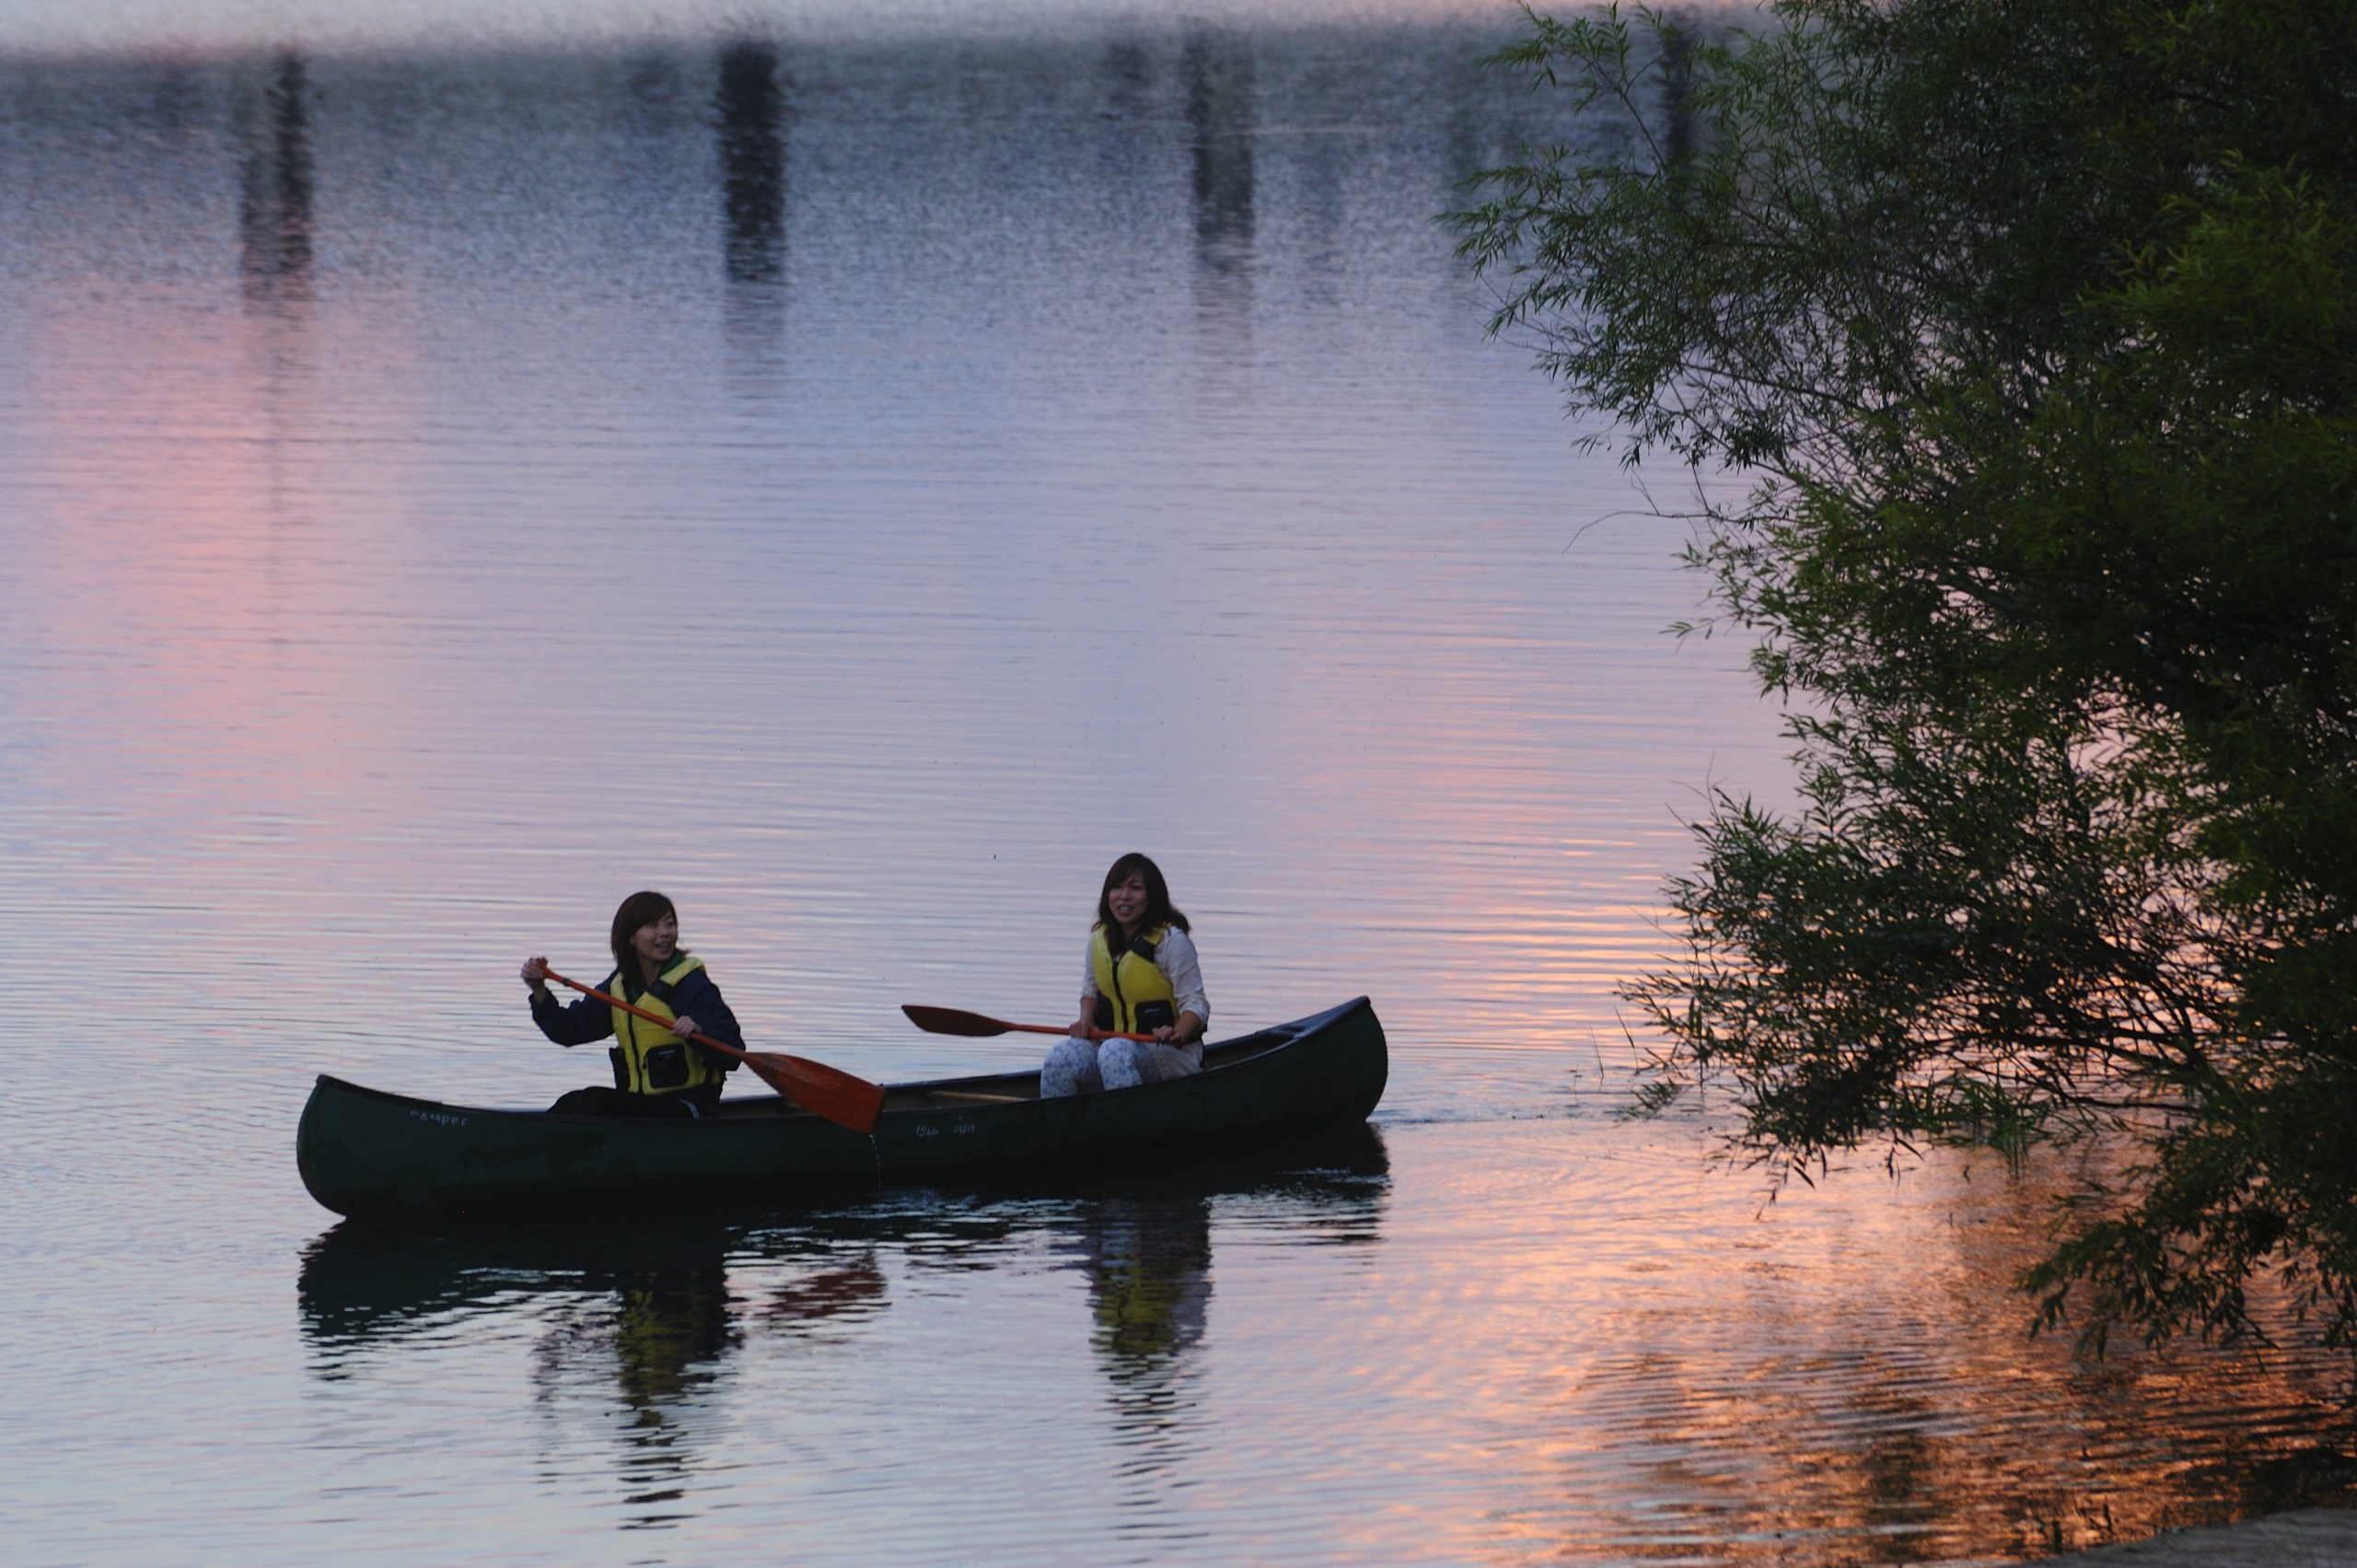 Take a leisurely canoe walk on the quiet lake surface at dusk